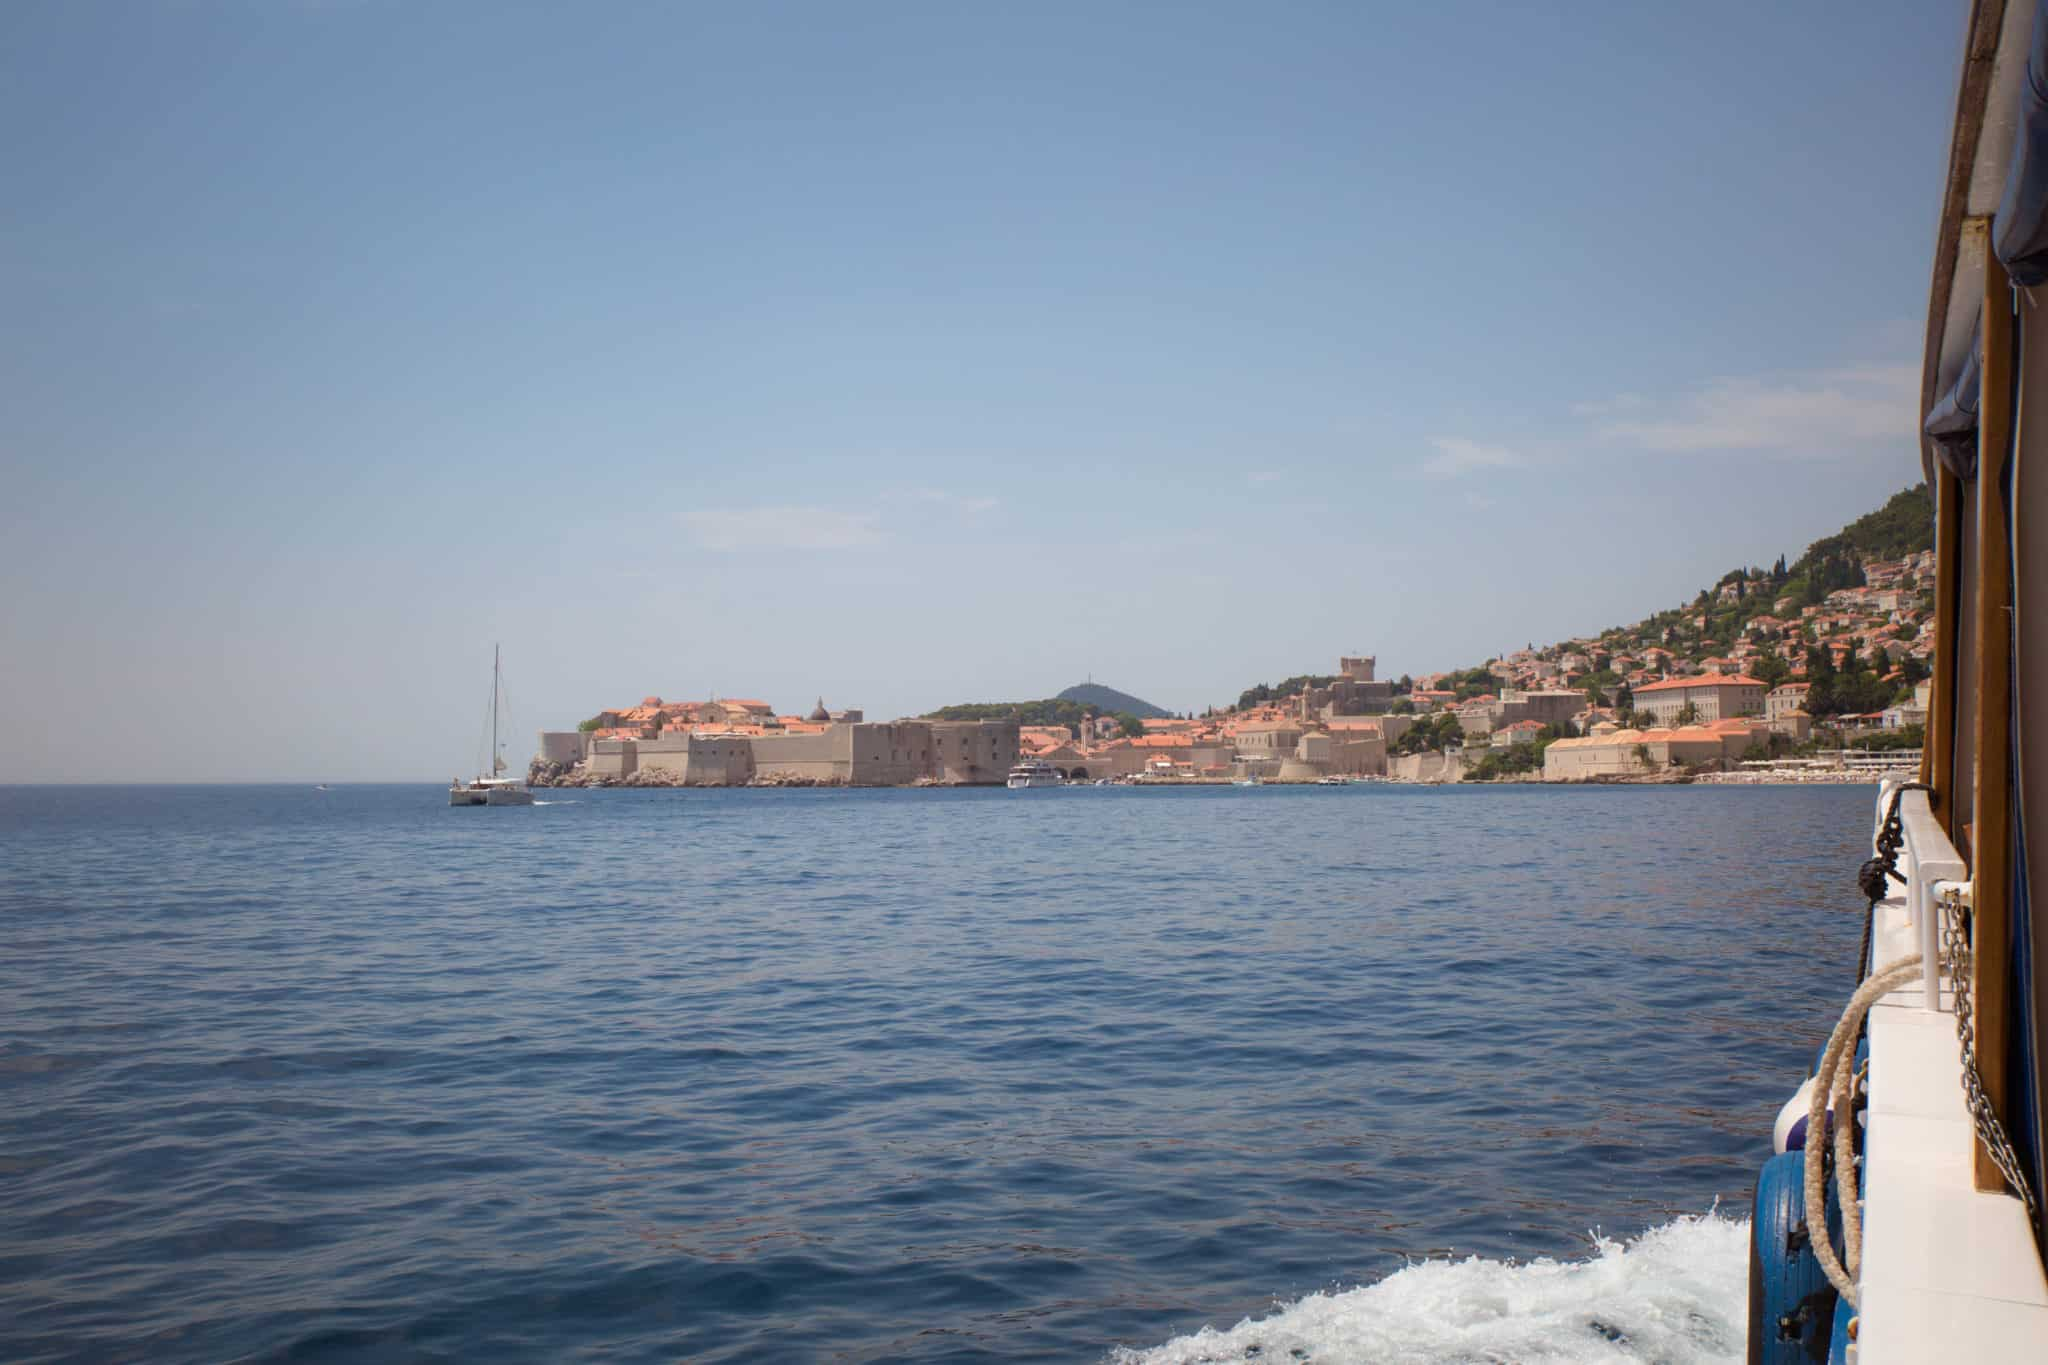 The Best Way To Spend One Day in Dubrovnik - TRAVEL WITH MERAKI